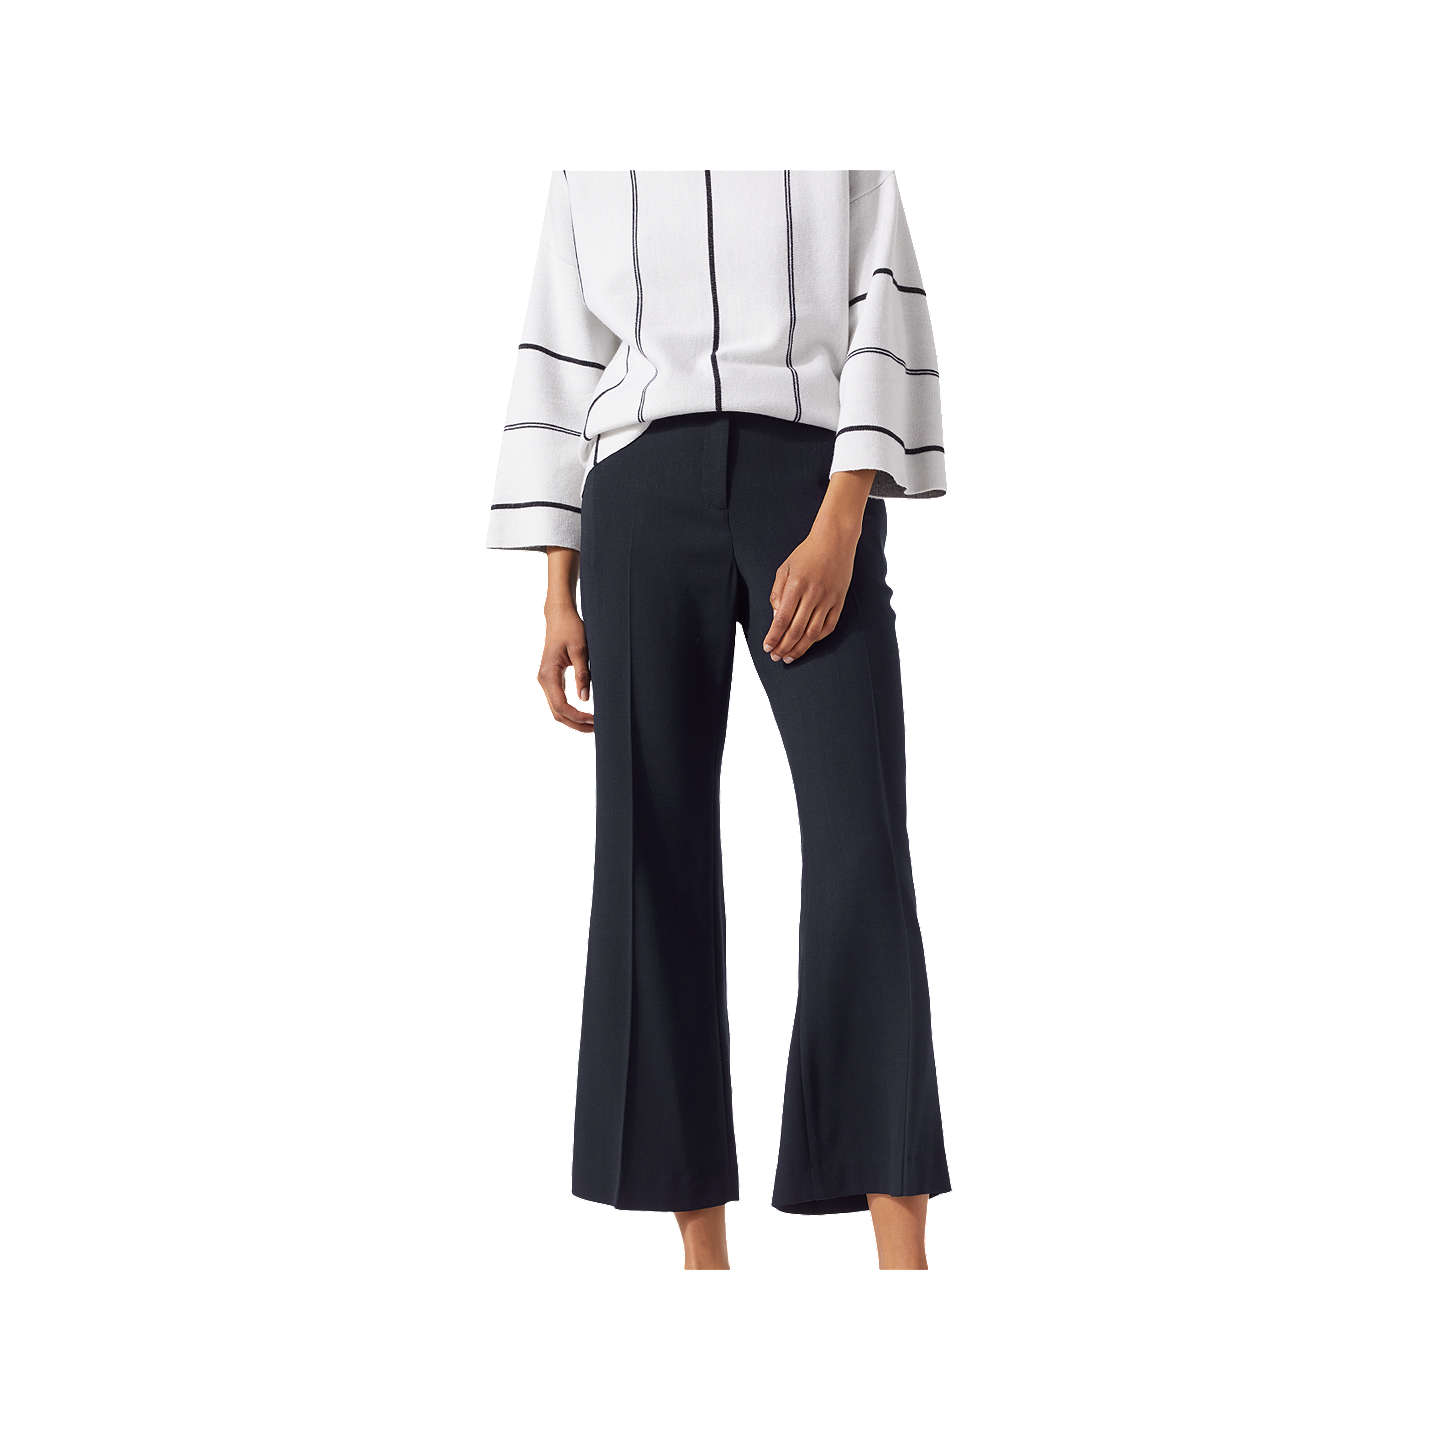 Buy Cheap Wholesale Price Tailored Kick Flare Trousers Jigsaw Cheap Sale Amazon Largest Supplier Sale Online HkntmqV7m